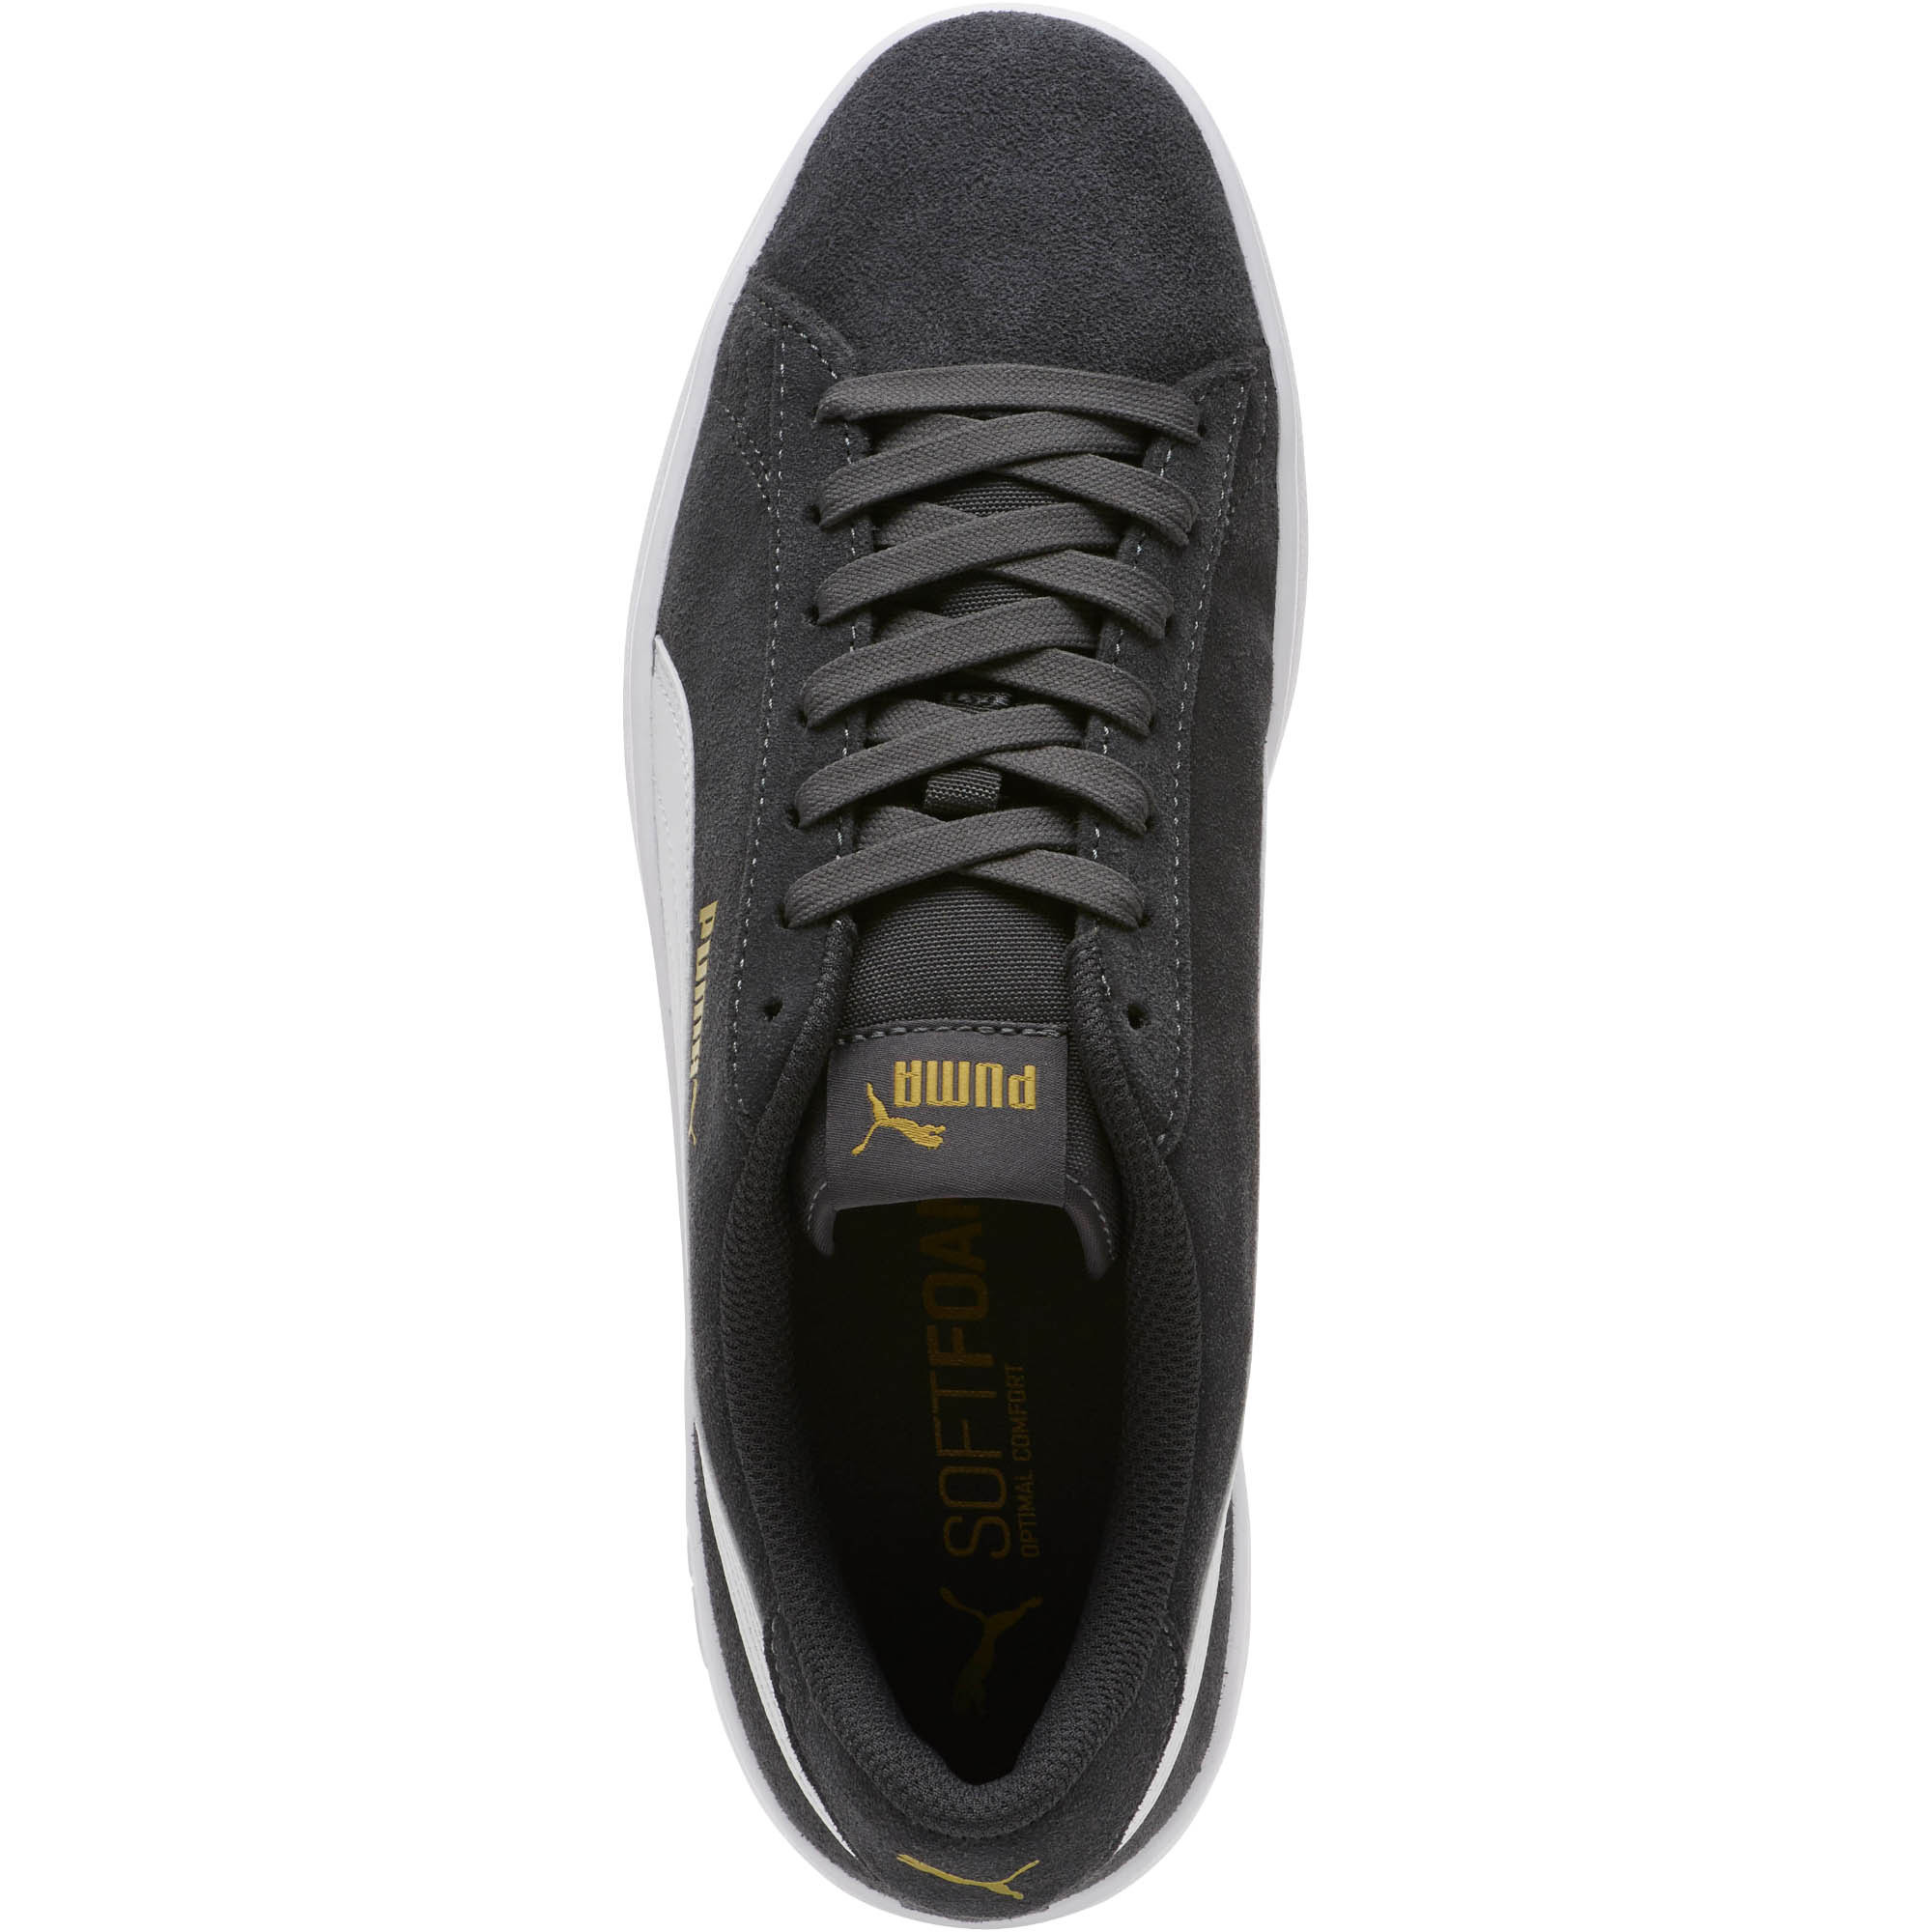 PUMA-PUMA-Smash-v2-Men-039-s-Sneakers-Men-Shoe-Basics thumbnail 37